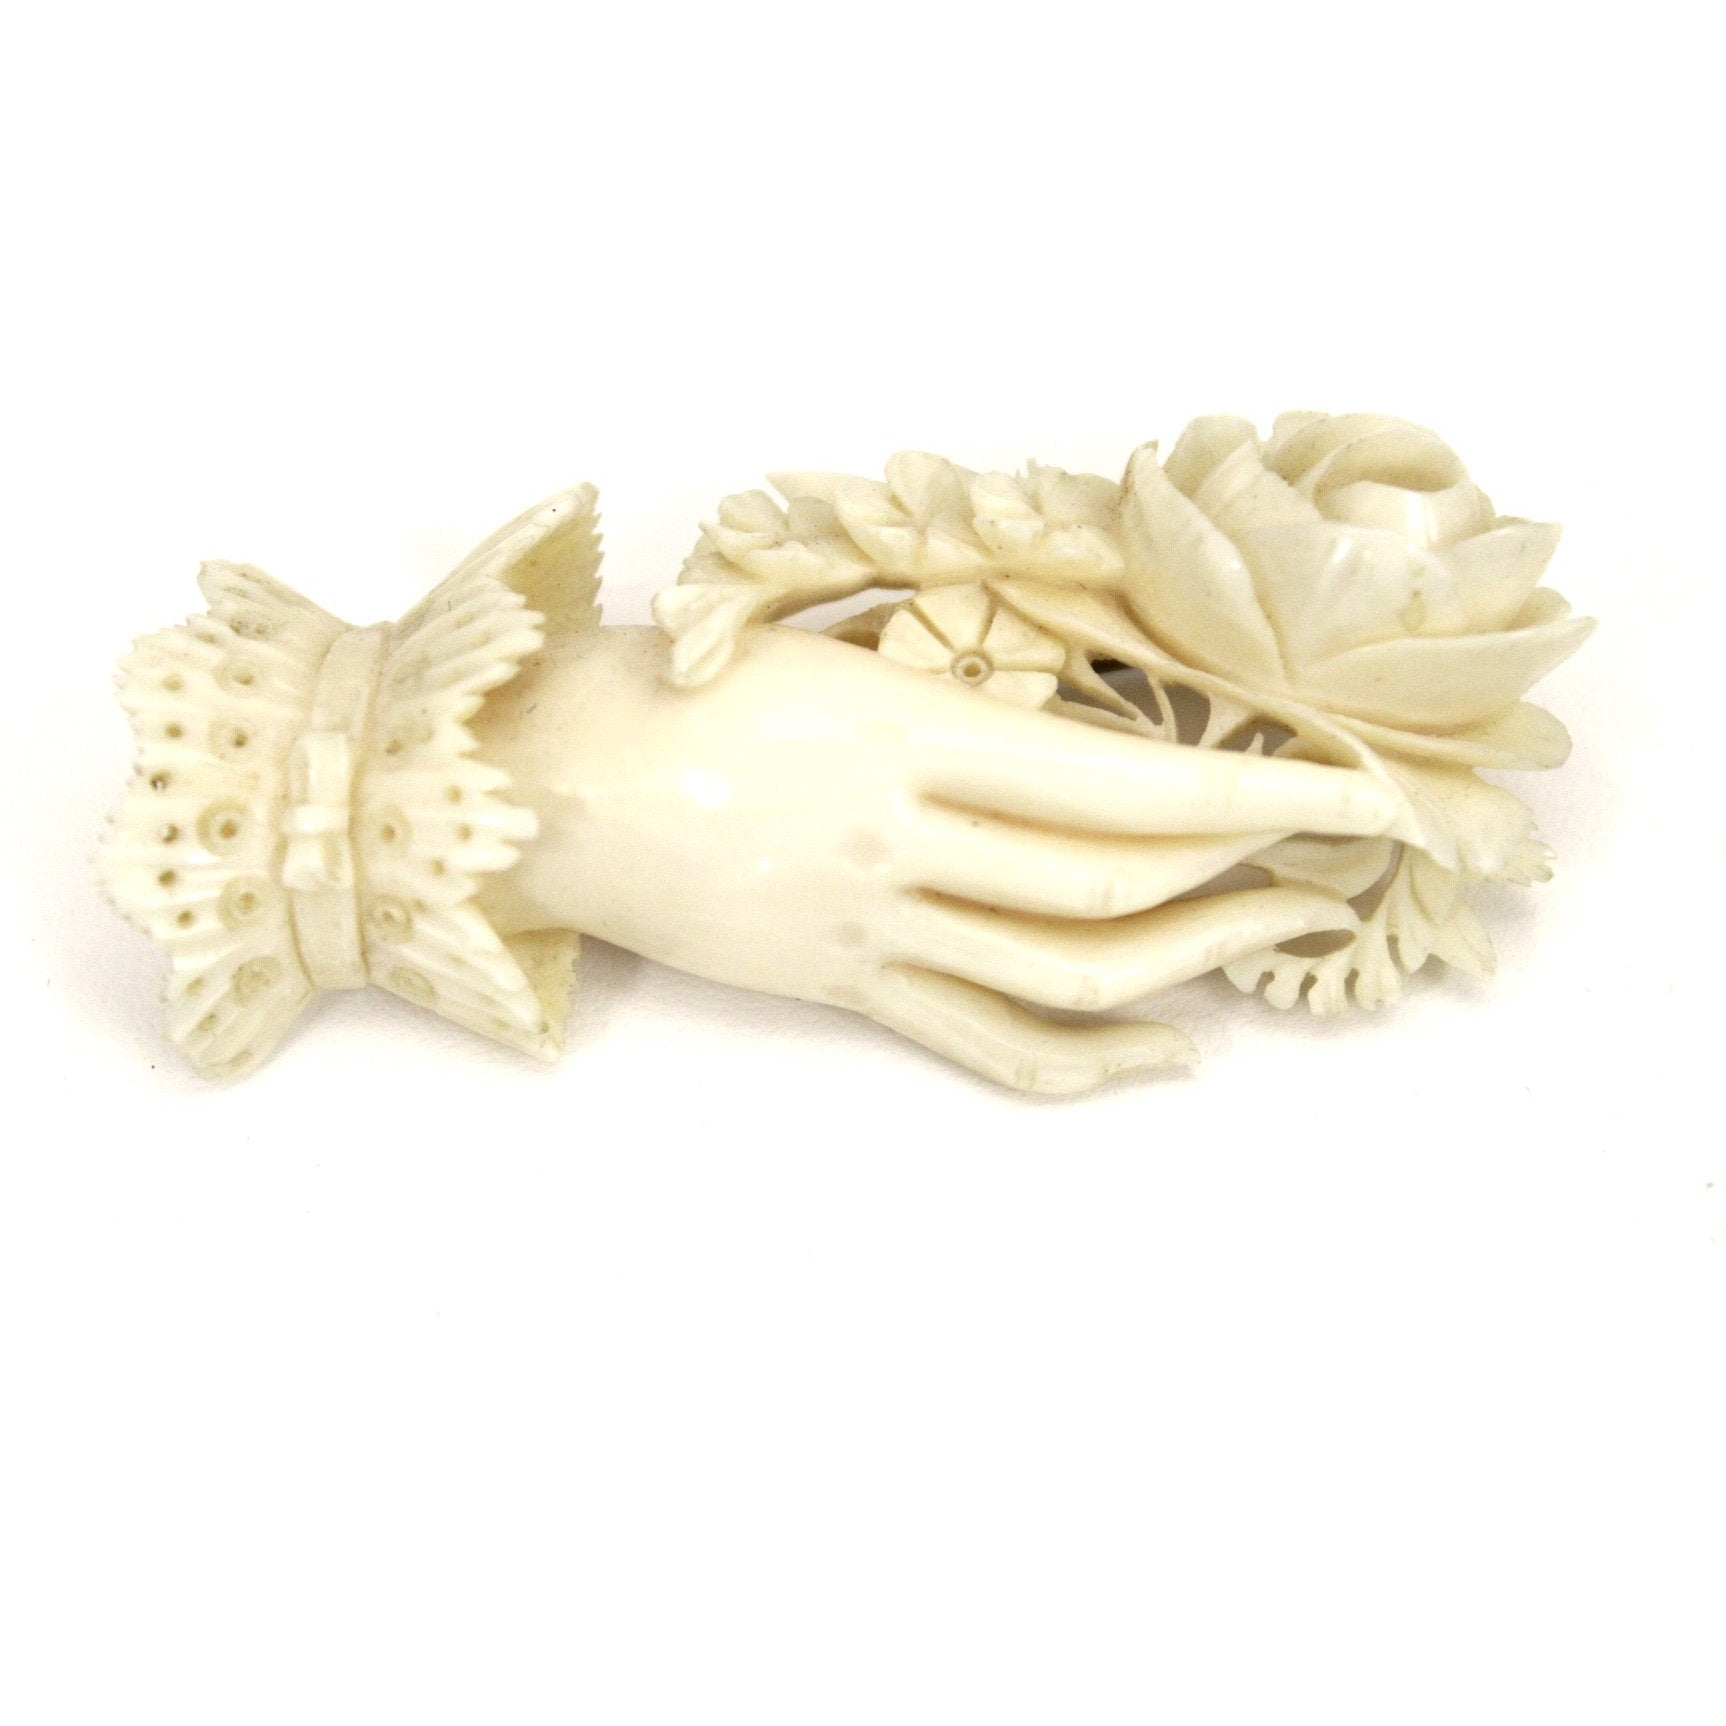 Rare Antique Ivory Brooch Woman S Hand Holding Flowers Hand Carved 2 1 The Best Vintage Clothing